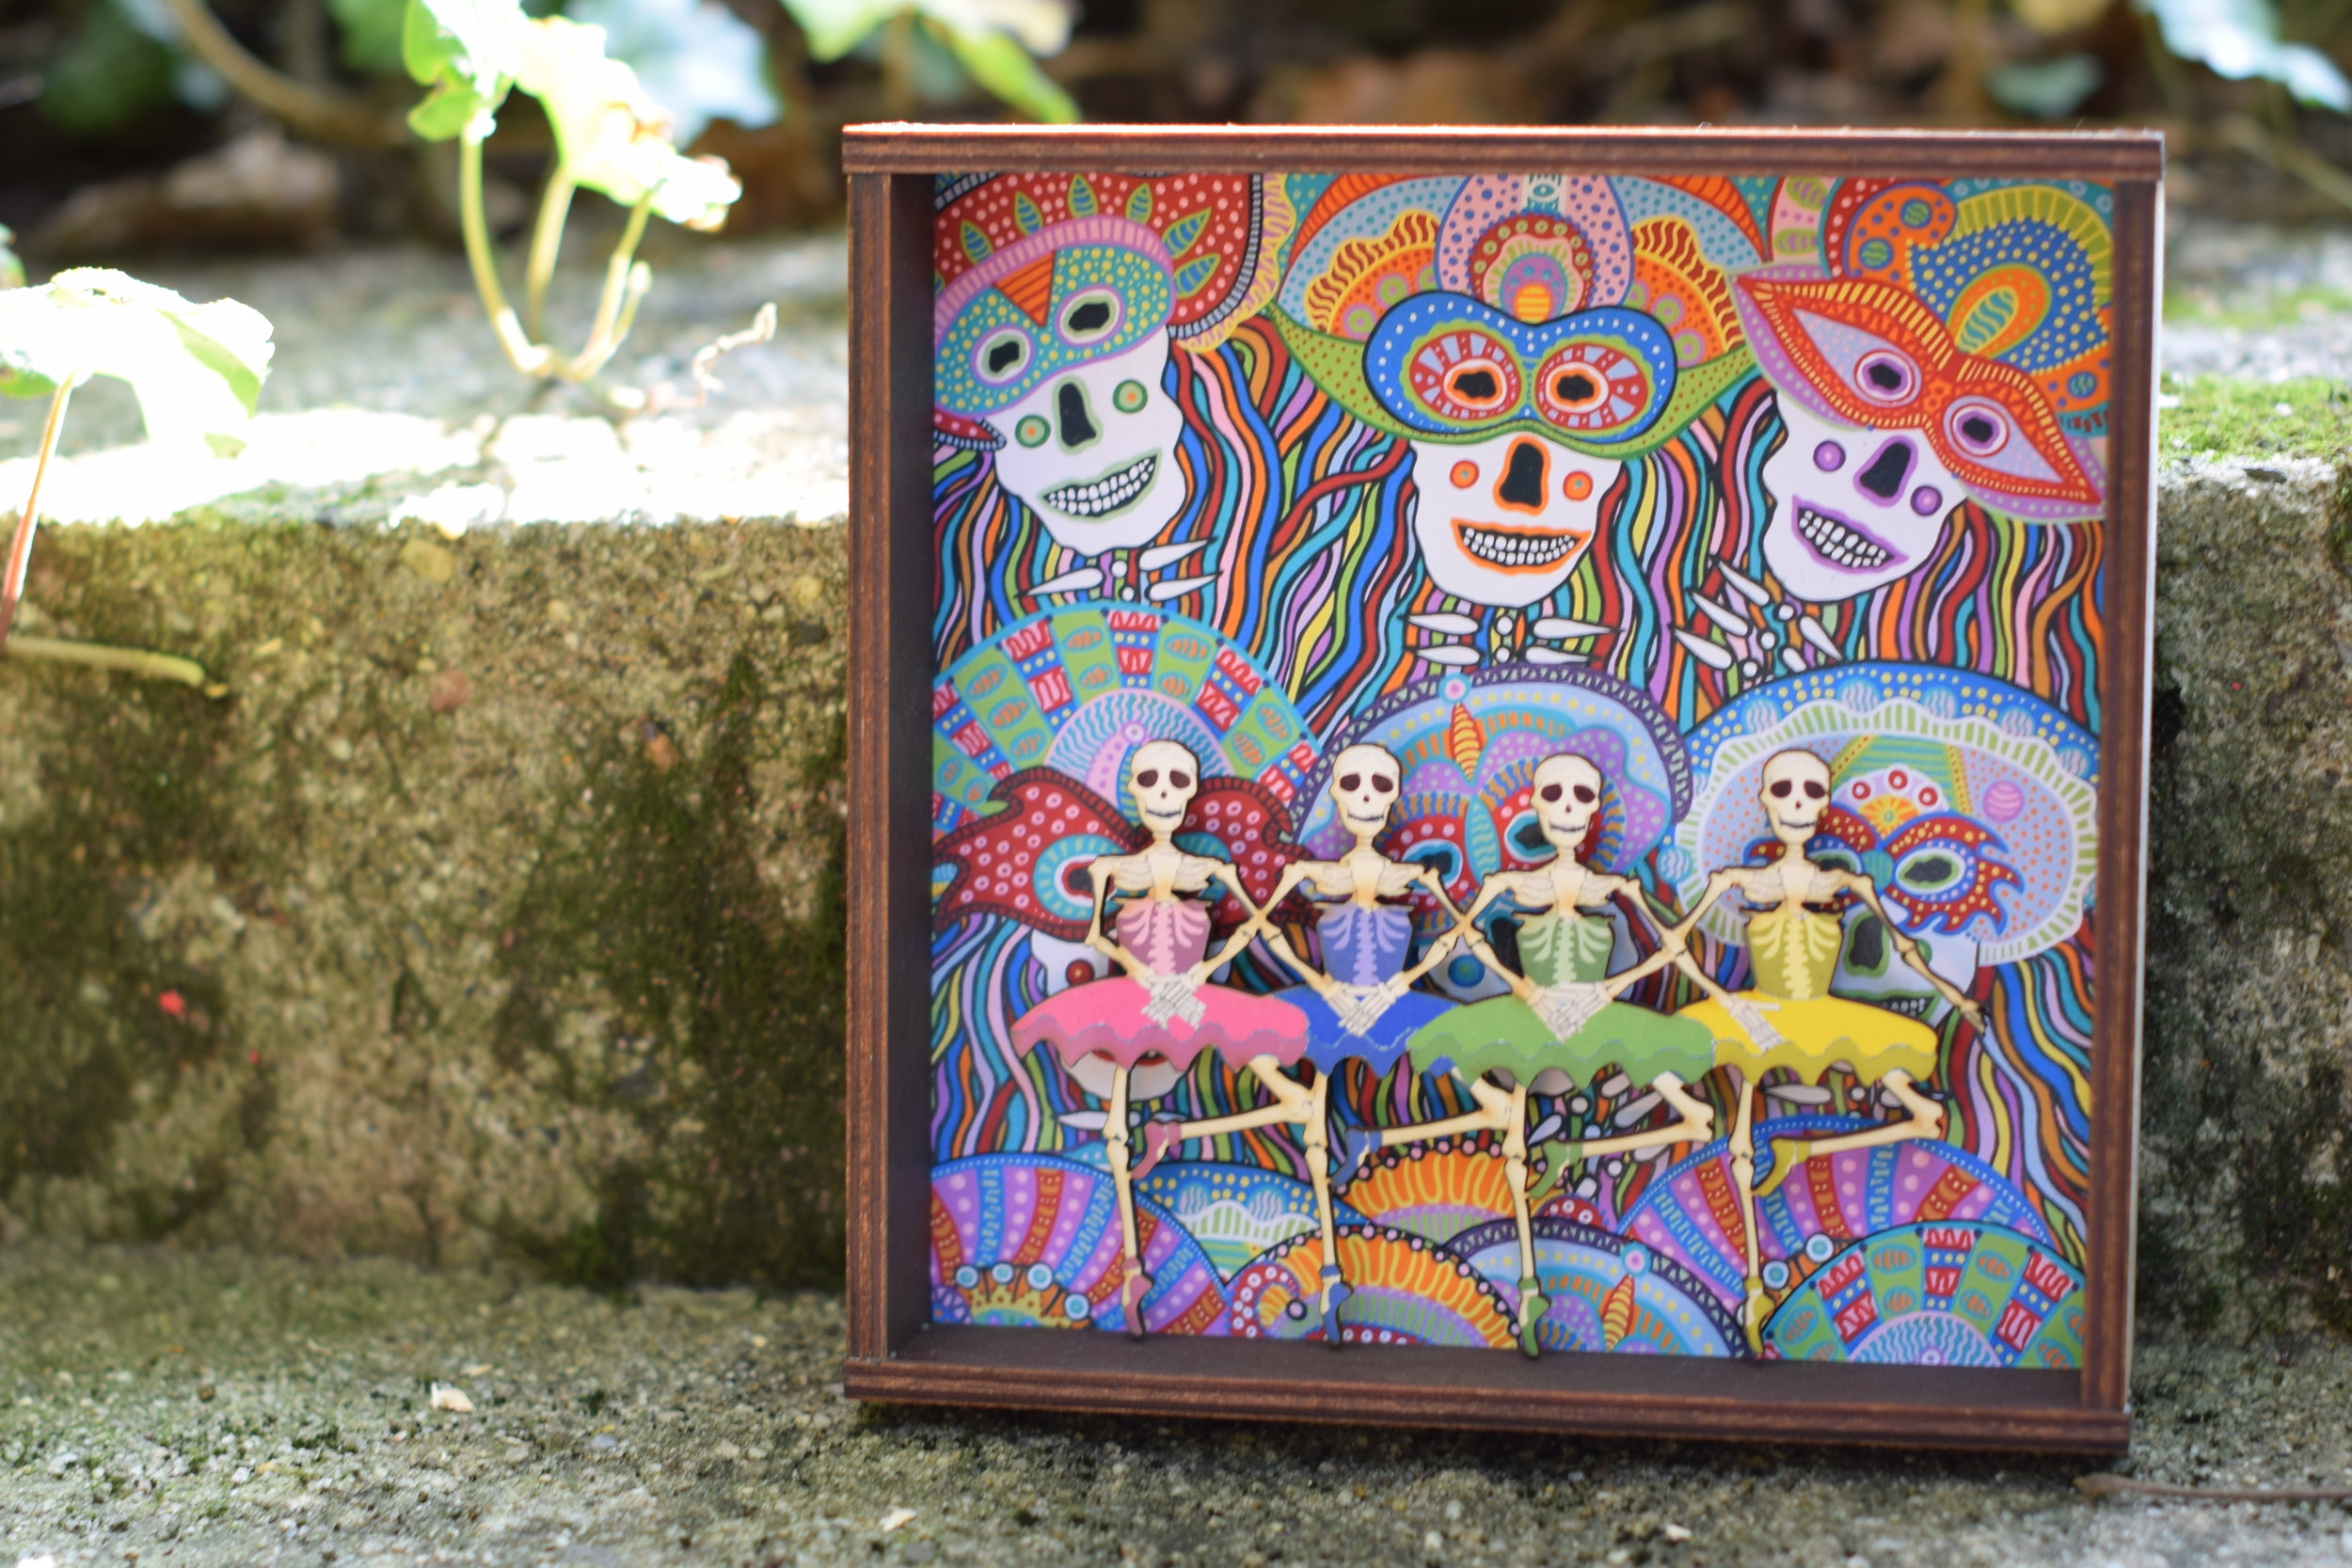 Halloween Shadow Boxes by Roadside Linen Arts of Philadelphia PA - interested in Halloween home ideas for 2018? Check out these indoor Calaveras skeletons created by Pennsylvania Artist Karen Bice, priced $32-36.